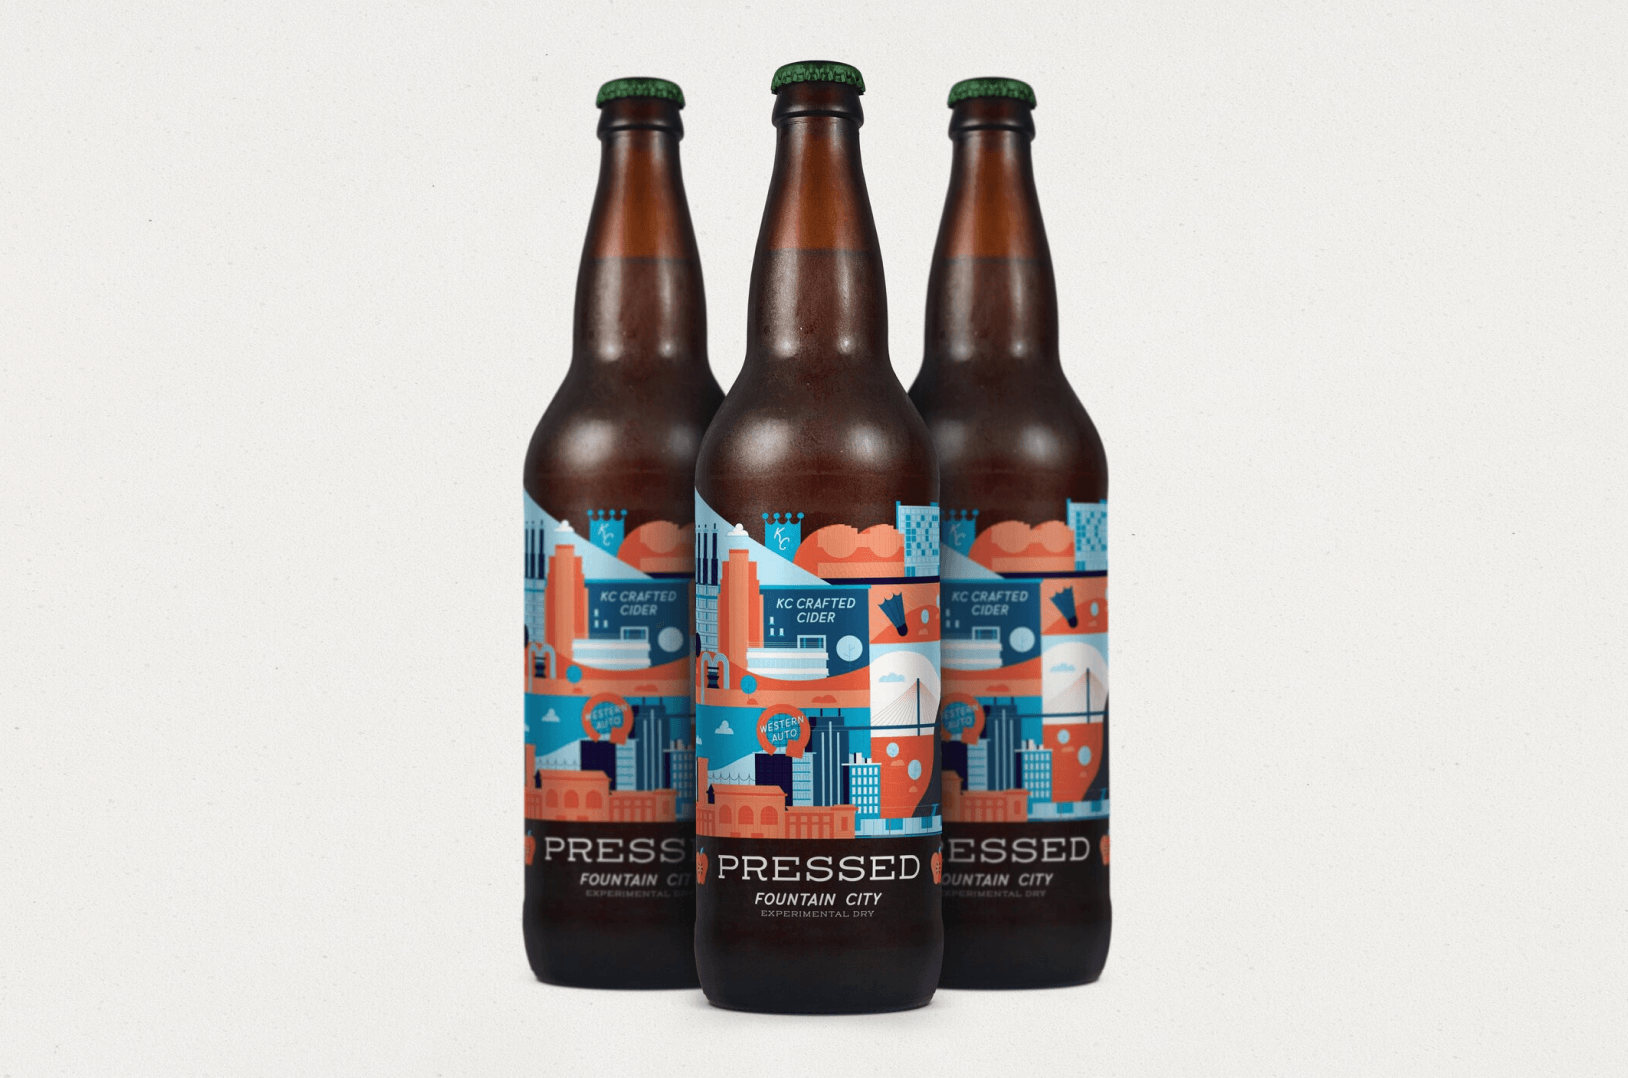 State Cider Co. brand identity and packaging design.